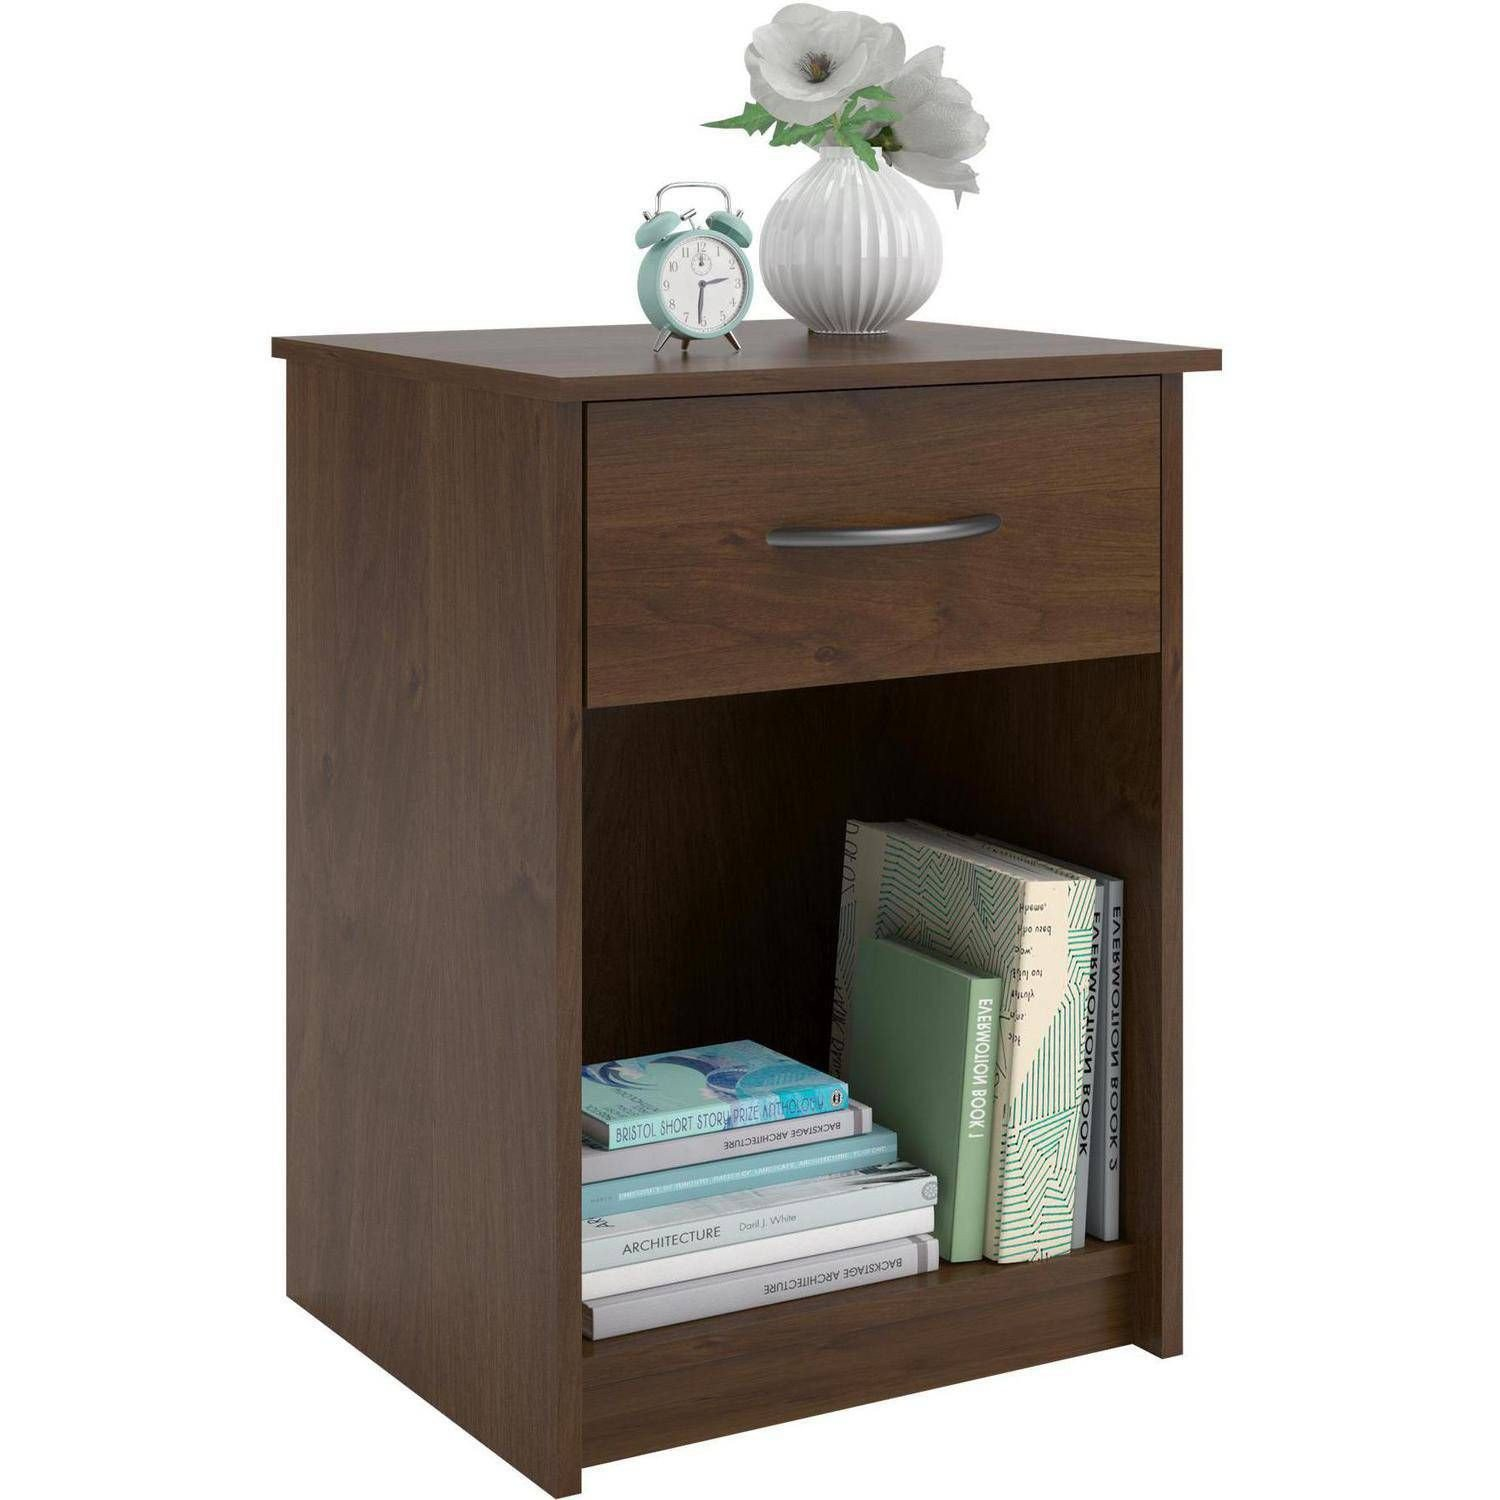 Walmart Bedroom End Tables Lovely Mainstays 1 Drawer Nightstand End Table Black Ebony ash